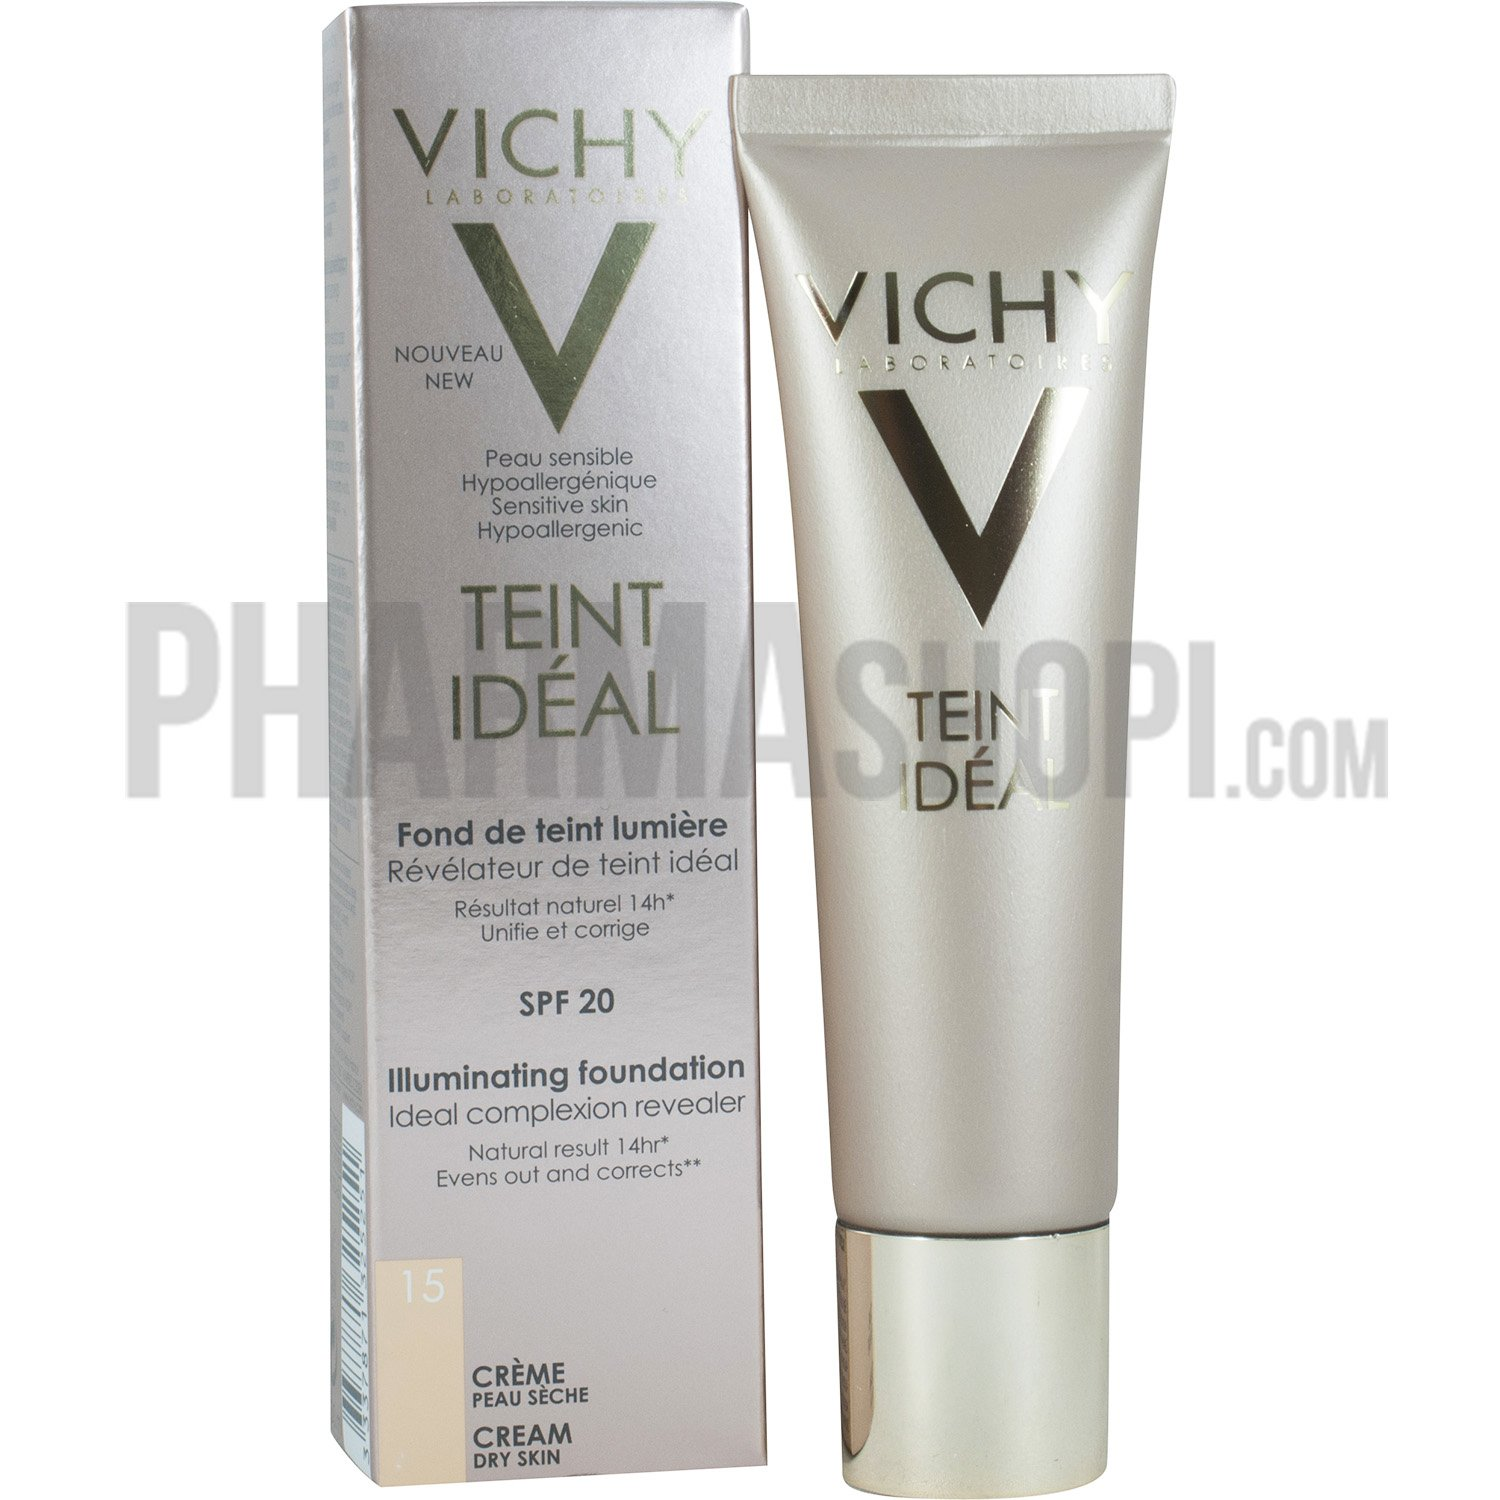 teint id al cr me fond de teint lumi re spf 20 teinte 15 clair vichy tube de 30 ml. Black Bedroom Furniture Sets. Home Design Ideas